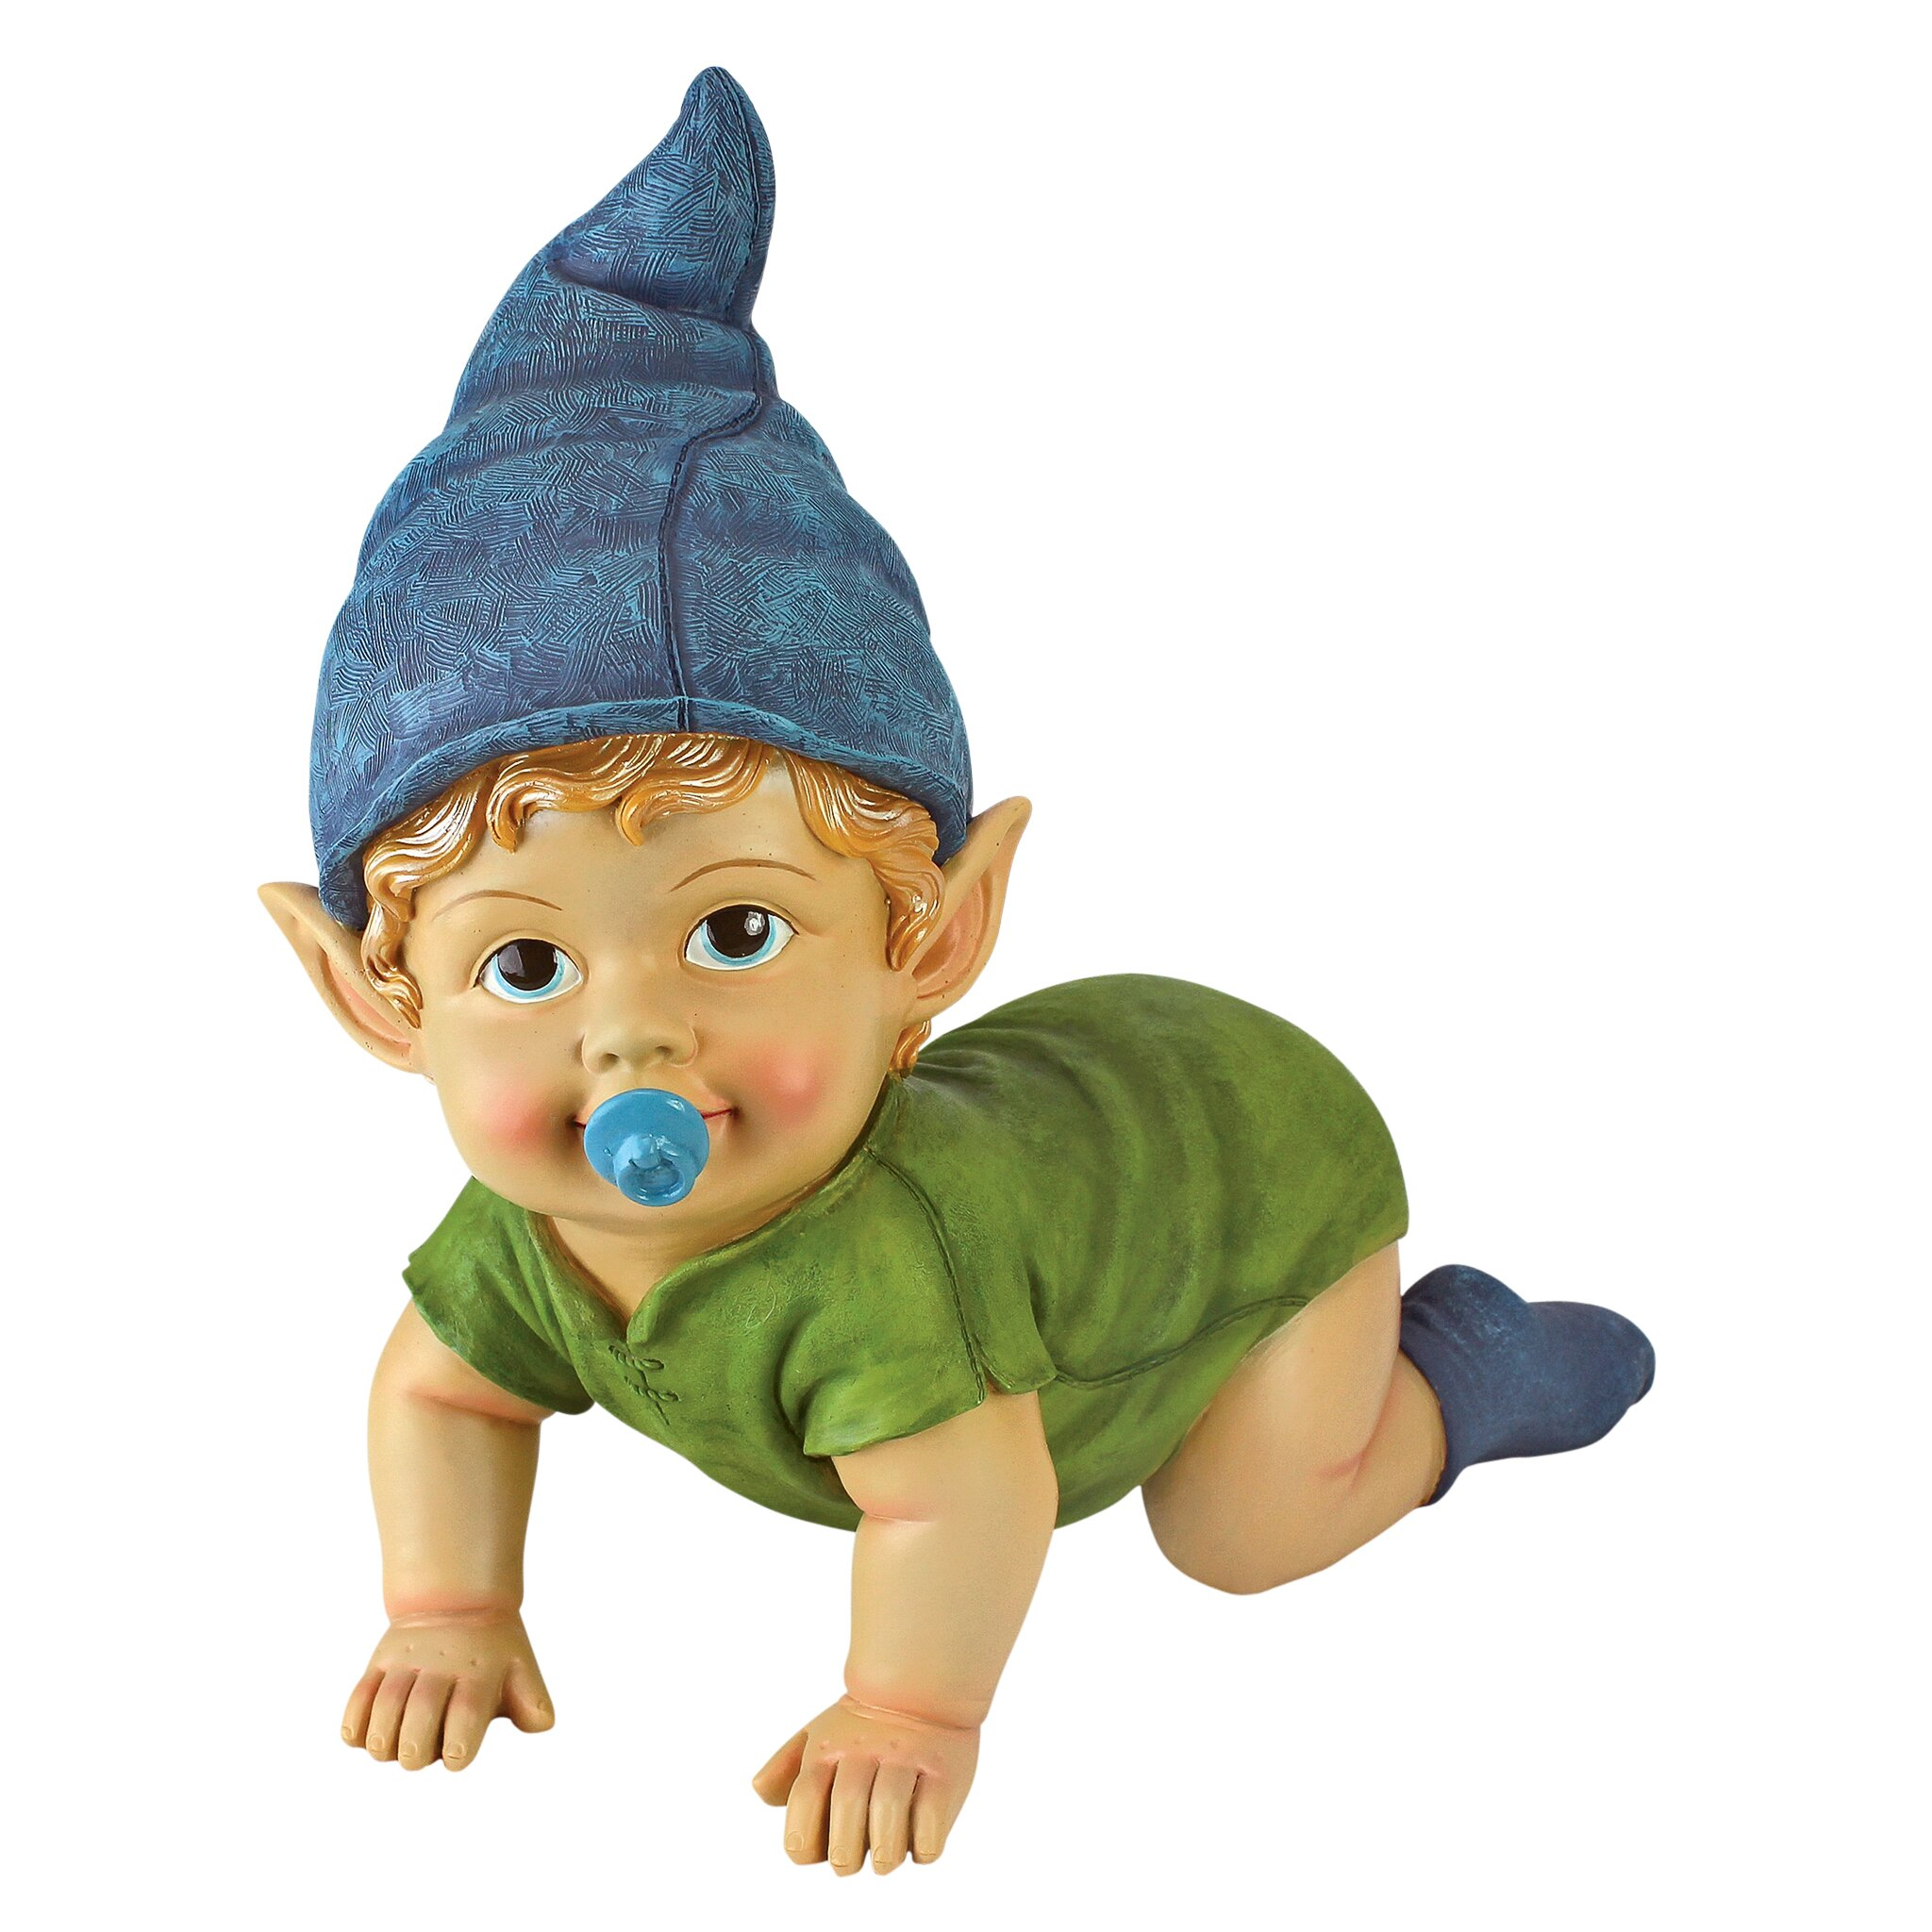 Gnome In Garden: Design Toscano Blaze The Baby Gnome Statue & Reviews